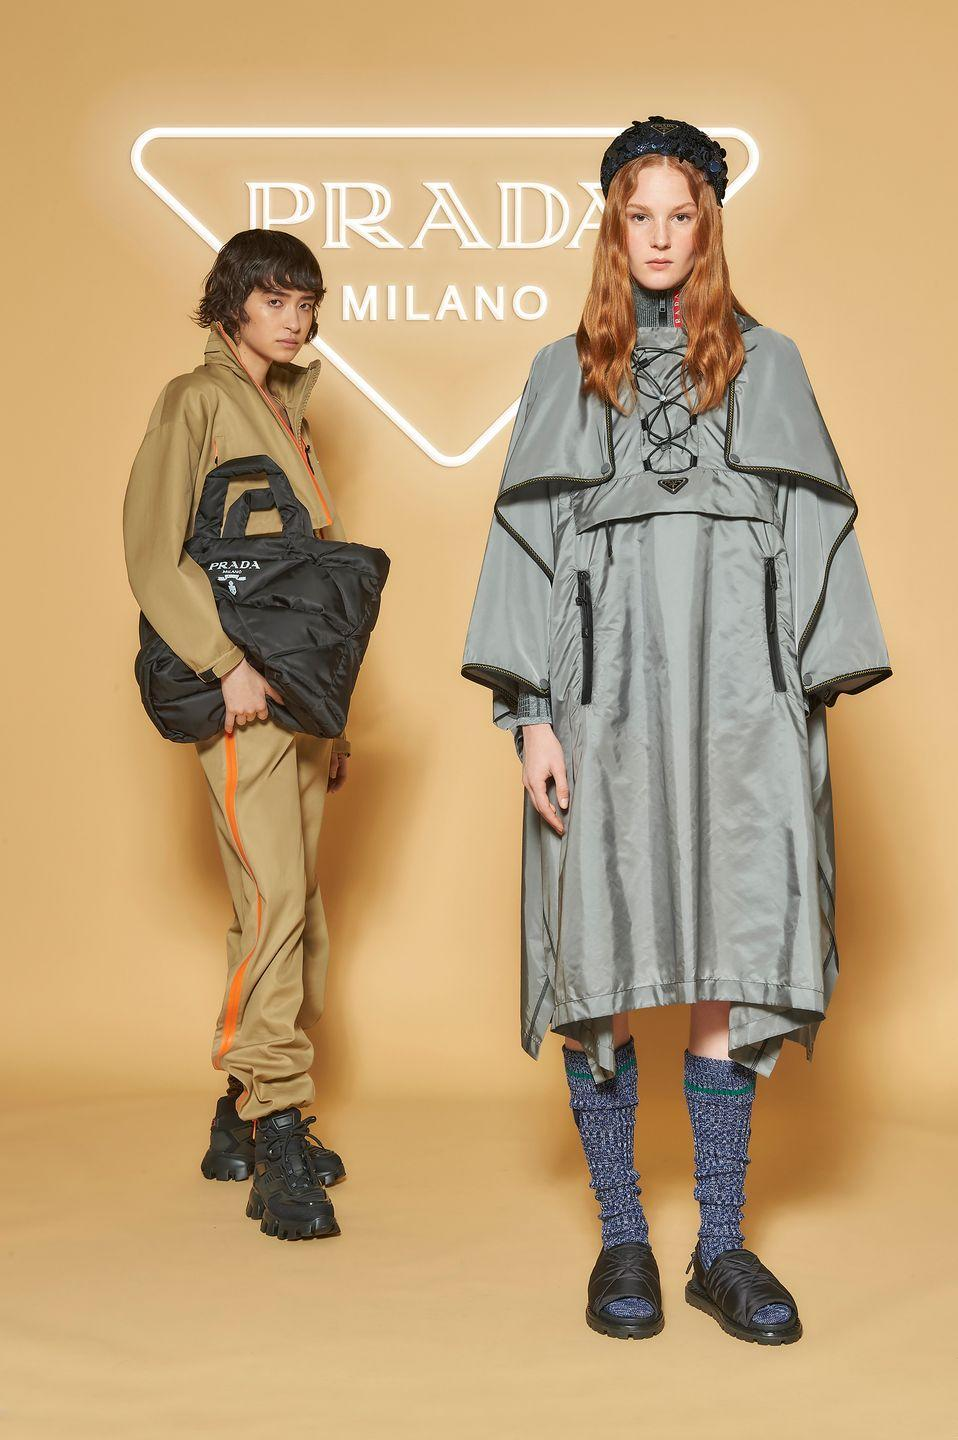 """<p><strong>Who: </strong>Prada</p><p><strong>What: </strong>Outdoor Mountain collection and pop-up stores</p><p><strong>Where:</strong> Pop-ups at Beverly Hills and Broadway NYC stores til August 9, available online at Prada.com</p><p><strong>Why:</strong> Prada is adventuring into the next outdoor environment, this time honoring the sporty leisure of mountainside dressing. Technical nylon jackets and pants take on muted colors inspired by mountain range colors and patterns. Tartan adorns sleeping bags, totes, and Re-Nylon sport bras to provide elevated athleisure for the slopes and back. Prada Outdoor Mountain will hit the slopes in New York and Beverly Hills today in stores until mid-August. </p><p><a class=""""link rapid-noclick-resp"""" href=""""https://www.prada.com/us/en.html"""" rel=""""nofollow noopener"""" target=""""_blank"""" data-ylk=""""slk:SHOP NOW"""">SHOP NOW</a></p>"""